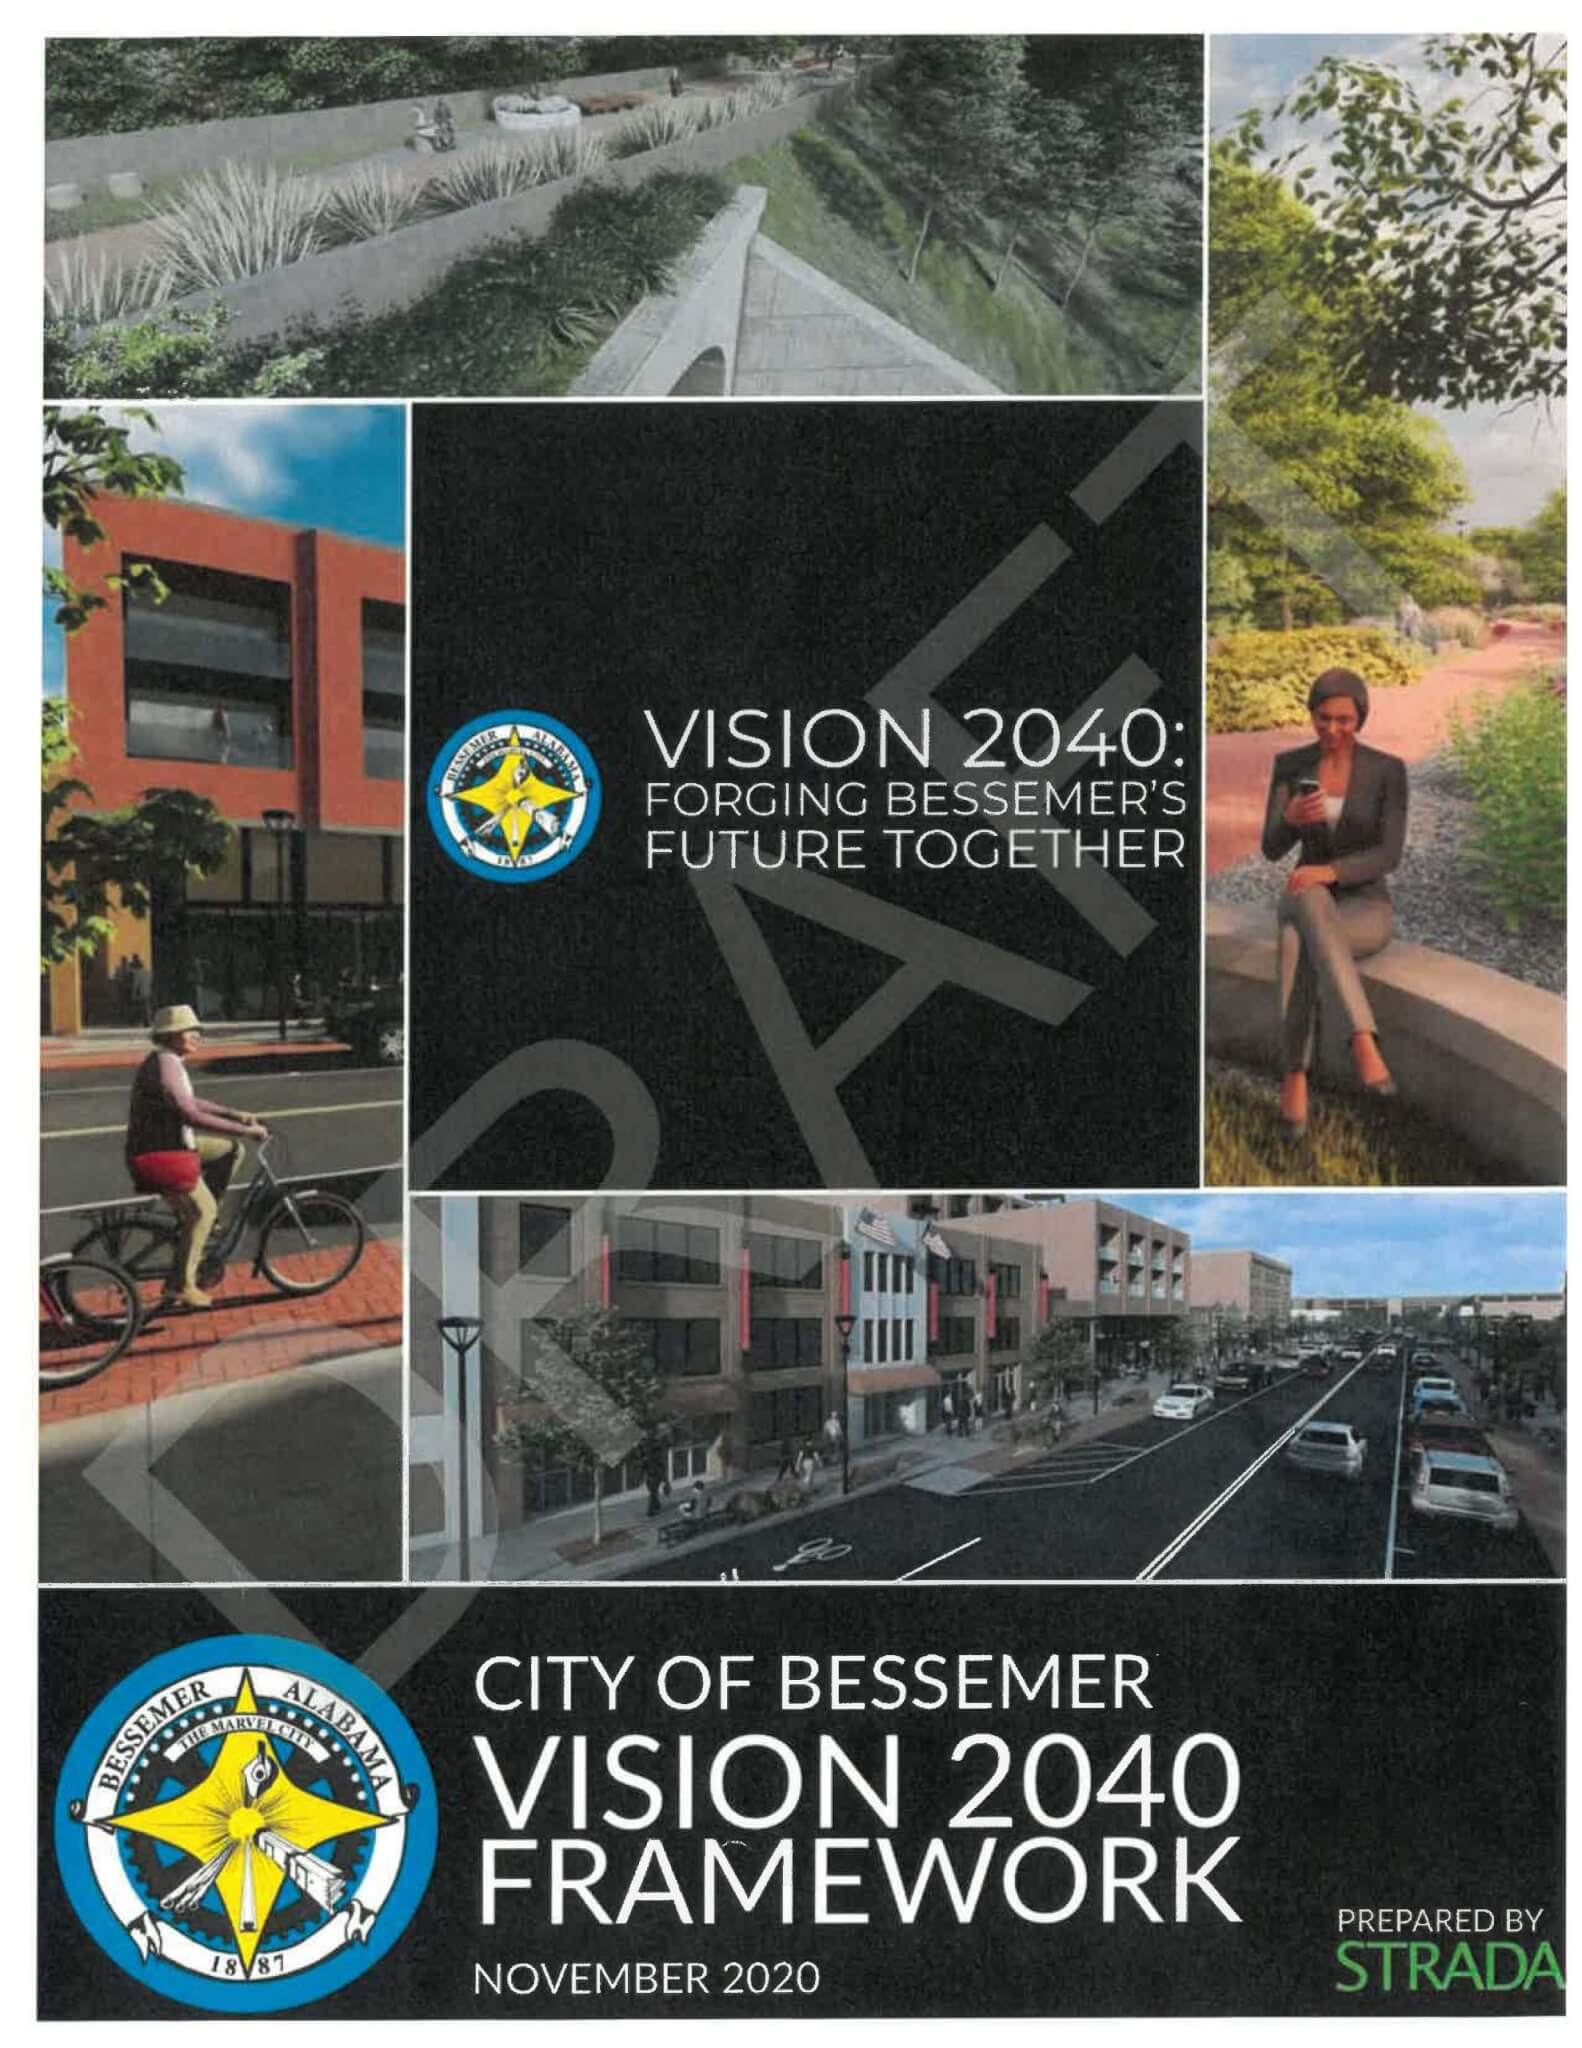 Draft of 2040 City of Bessemer Vision Framework available for review